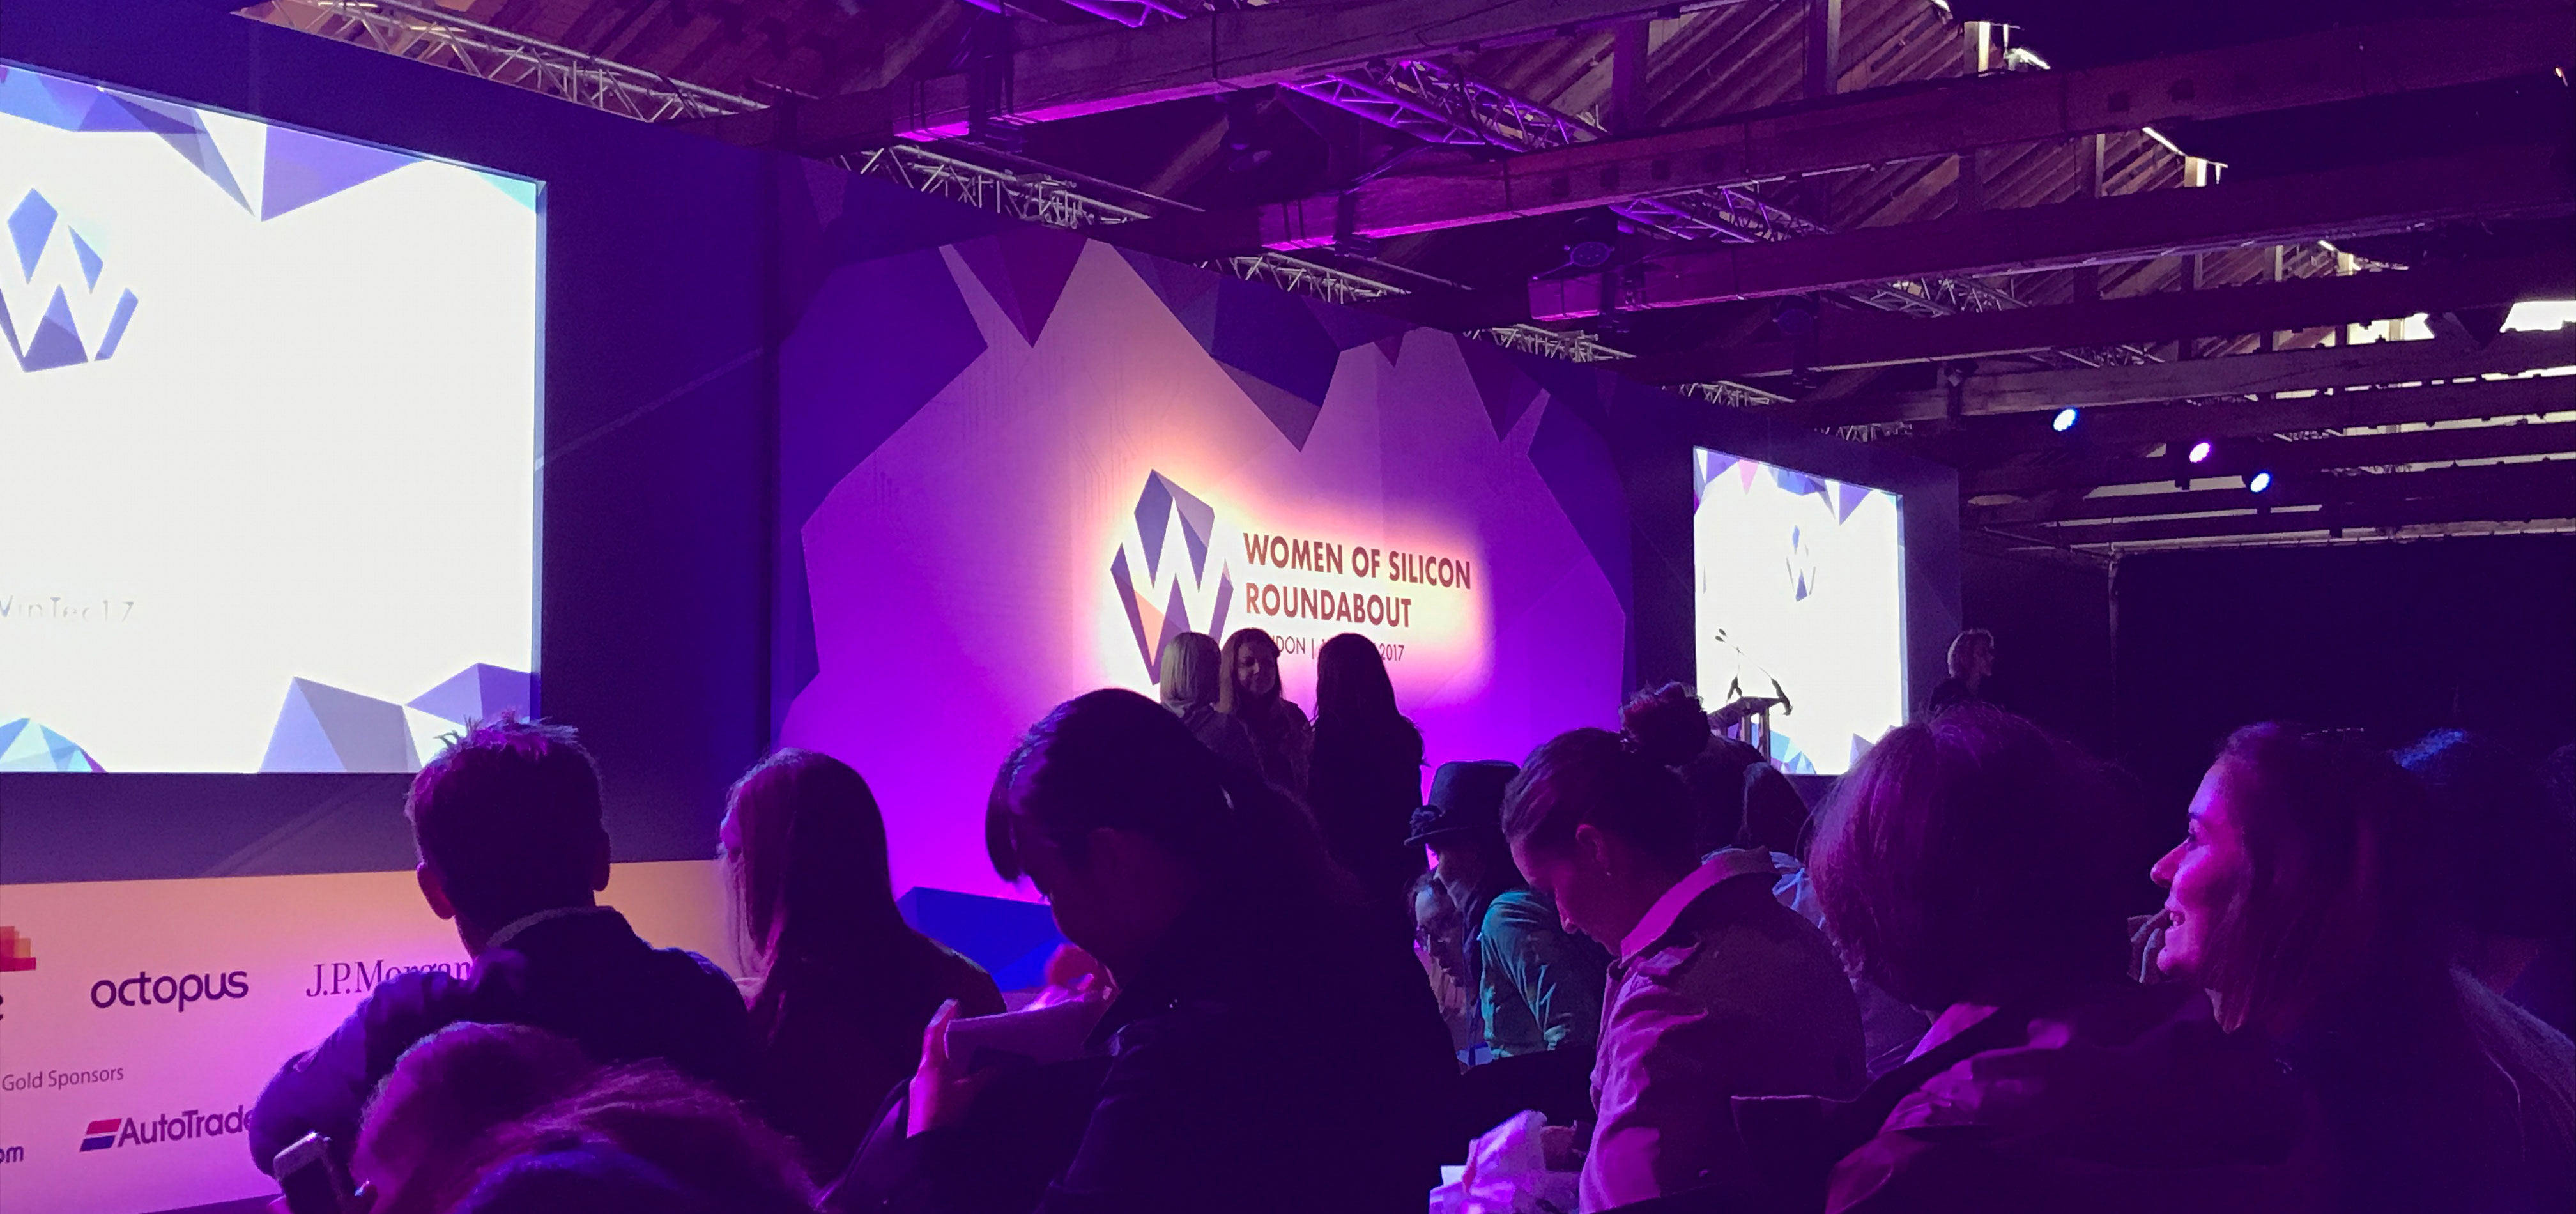 Women of Silicon Roundabout 2017: Refreshing, empowering and inclusive.